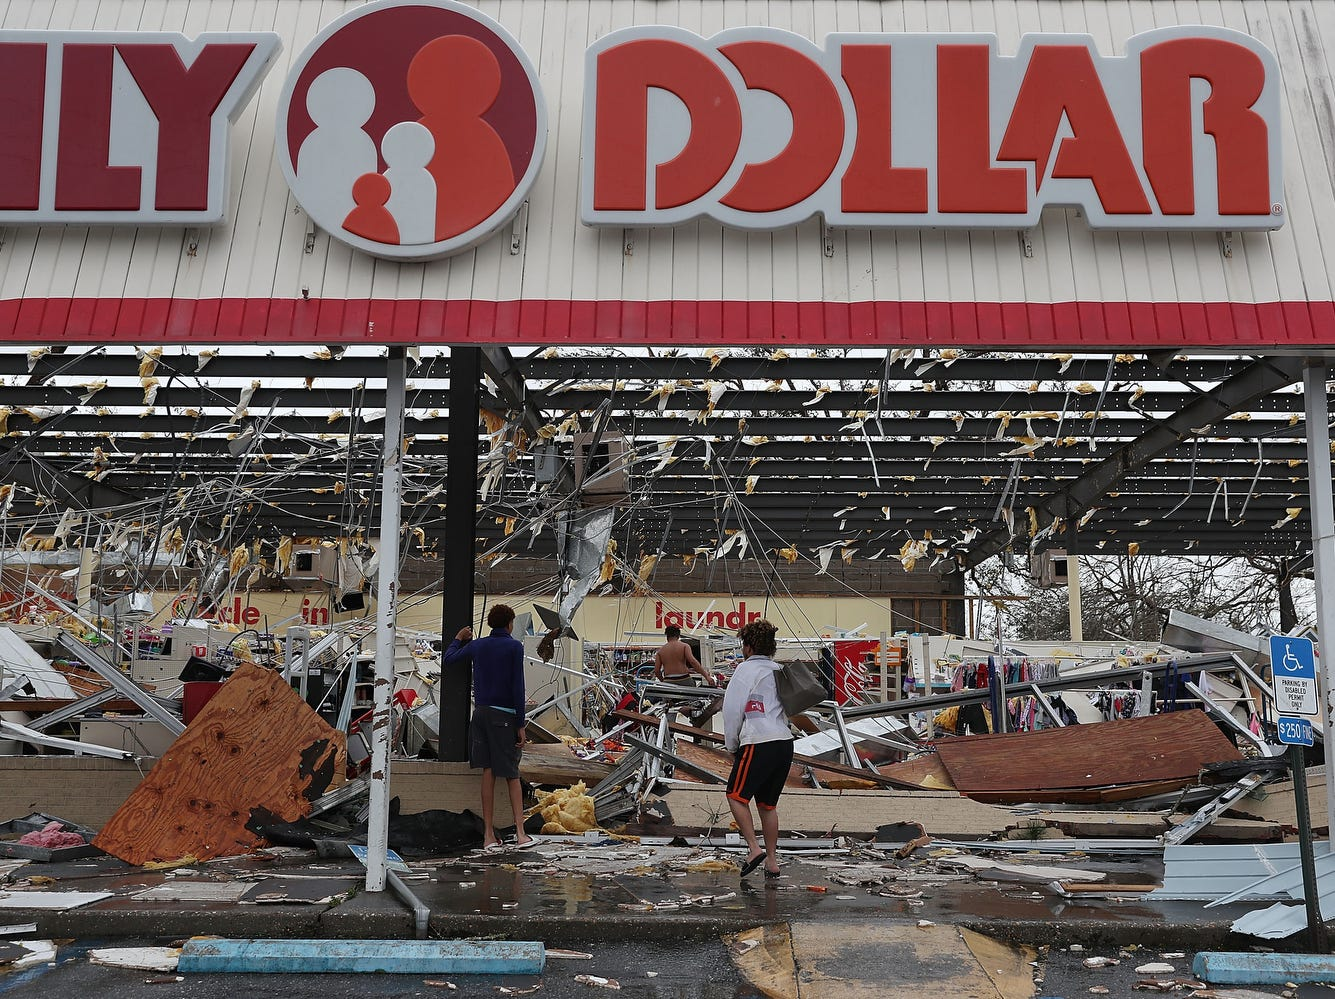 PANAMA CITY, FL - OCTOBER 10:  People look on at a damaged store after Hurricane Michael passed through on October 10, 2018 in Panama City, Florida. Michael made landfall at Mexico Beach today a Category 4 storm, with maximum sustained winds of 155 mph, the most powerful storm ever to hit the Florida Panhandle.  (Photo by Mark Wallheiser/Getty Images) ORG XMIT: 775240672 ORIG FILE ID: 1051849594